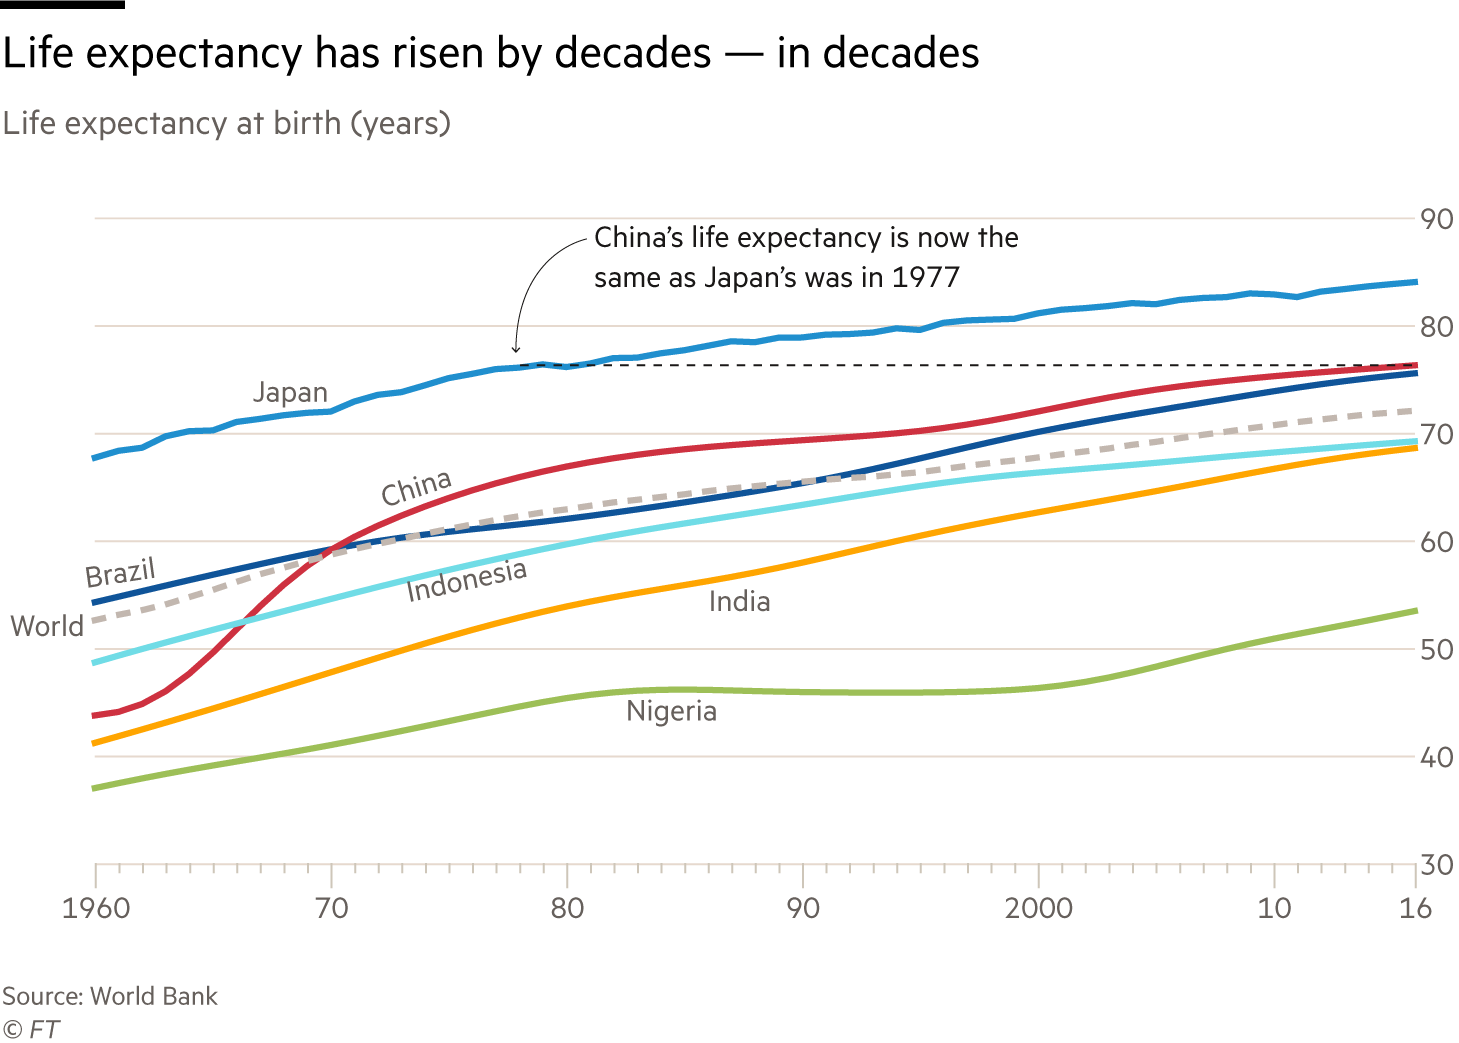 Chart showing increases in life expectancy